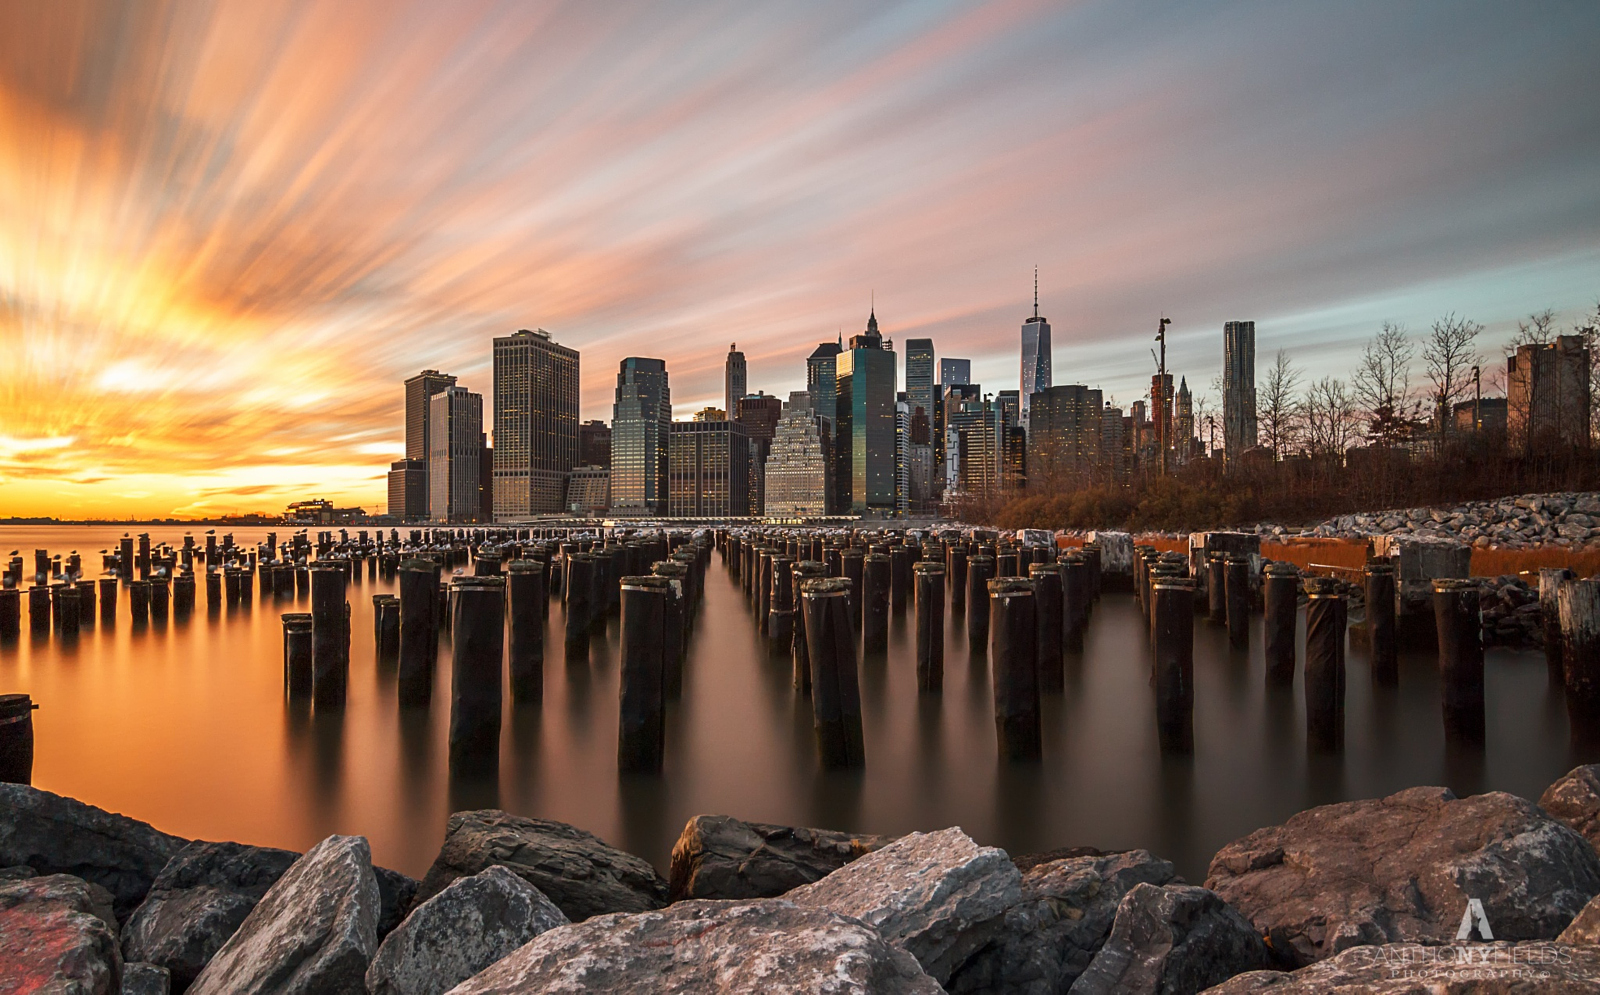 The Top 10 Cityscapes on 500px